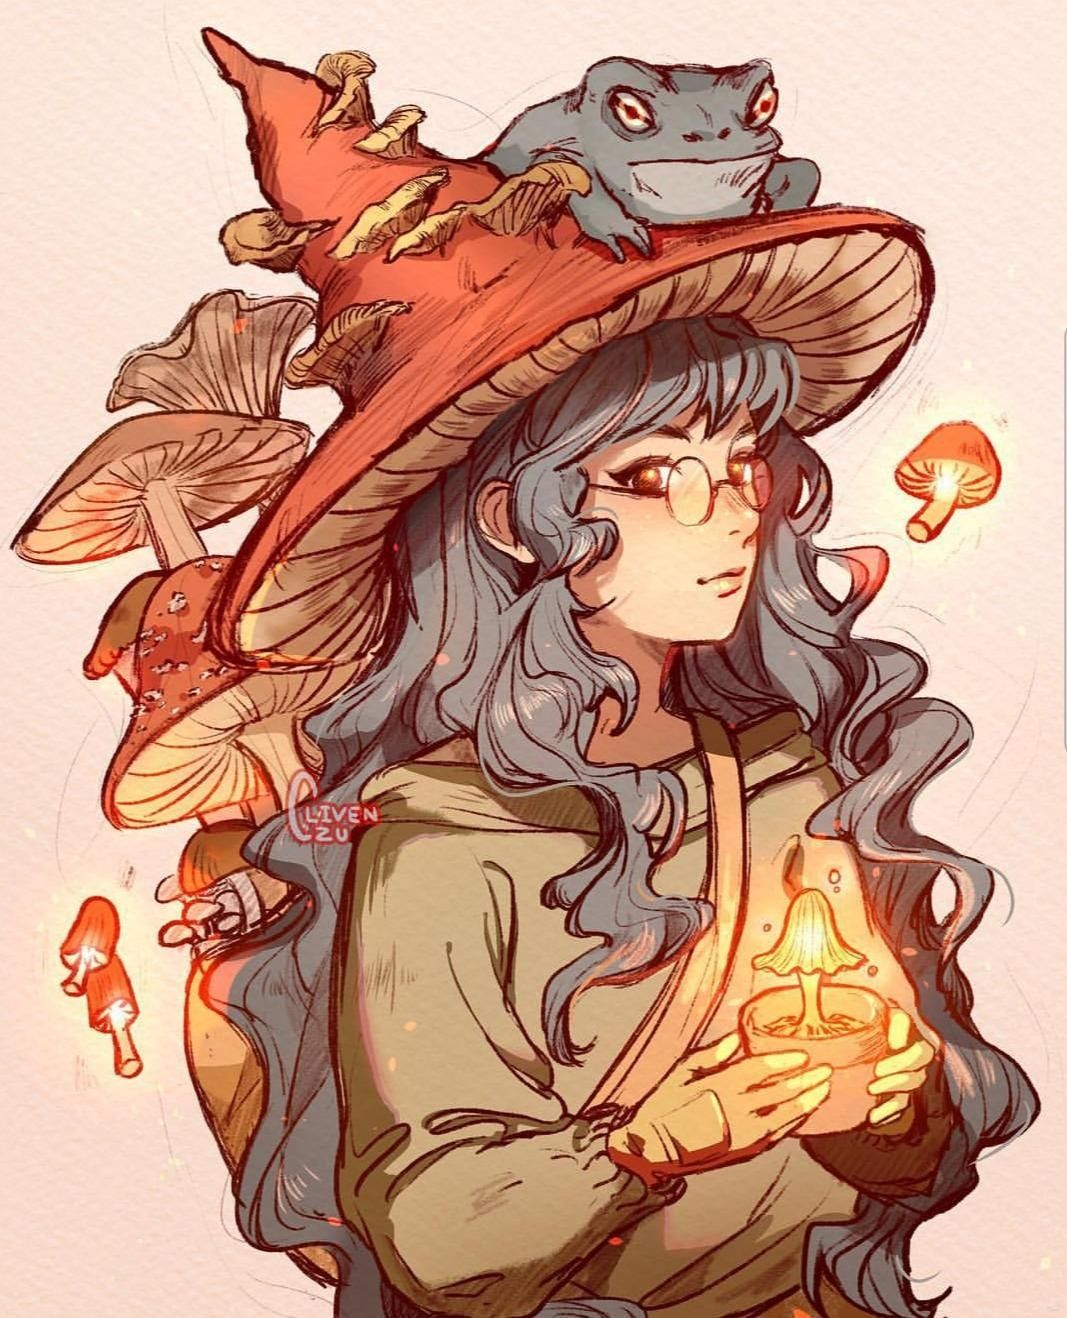 ☀︎𝕡𝕚𝕟𝕥𝕖𝕣𝕖𝕤𝕥☾𝕕𝕠𝕩𝕚𝕖𝟞𝟛𝟜 ☀︎ Character art, Witch art, Cute art